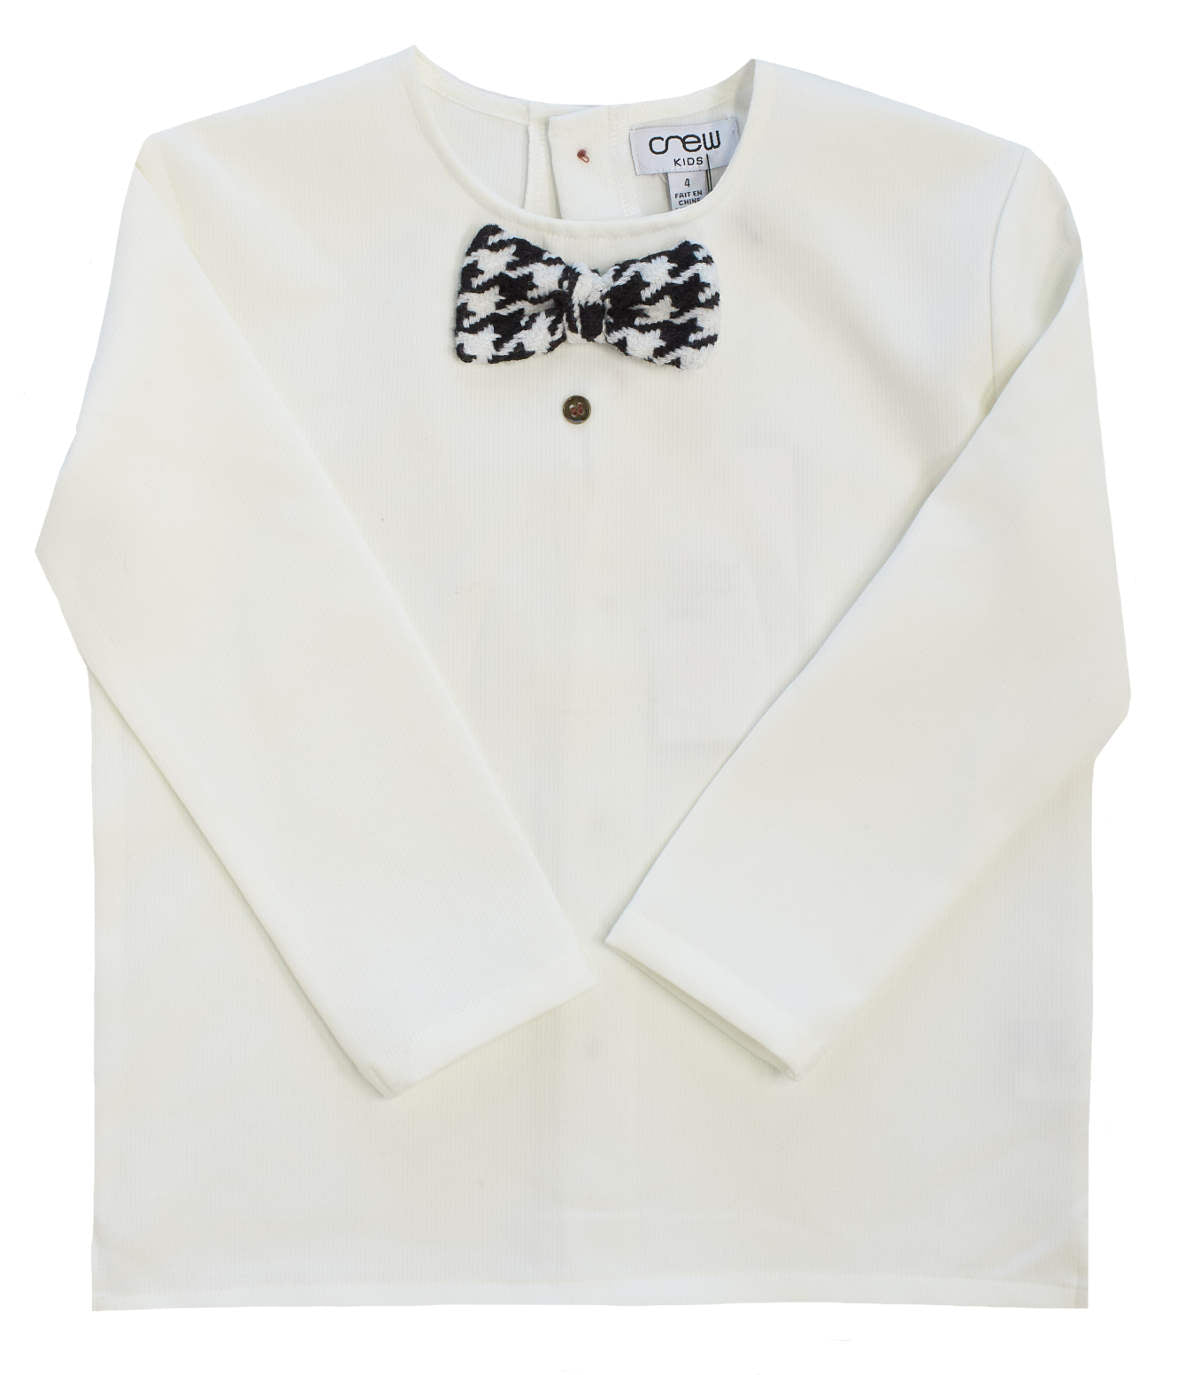 Crew Kids White Bowtie Top